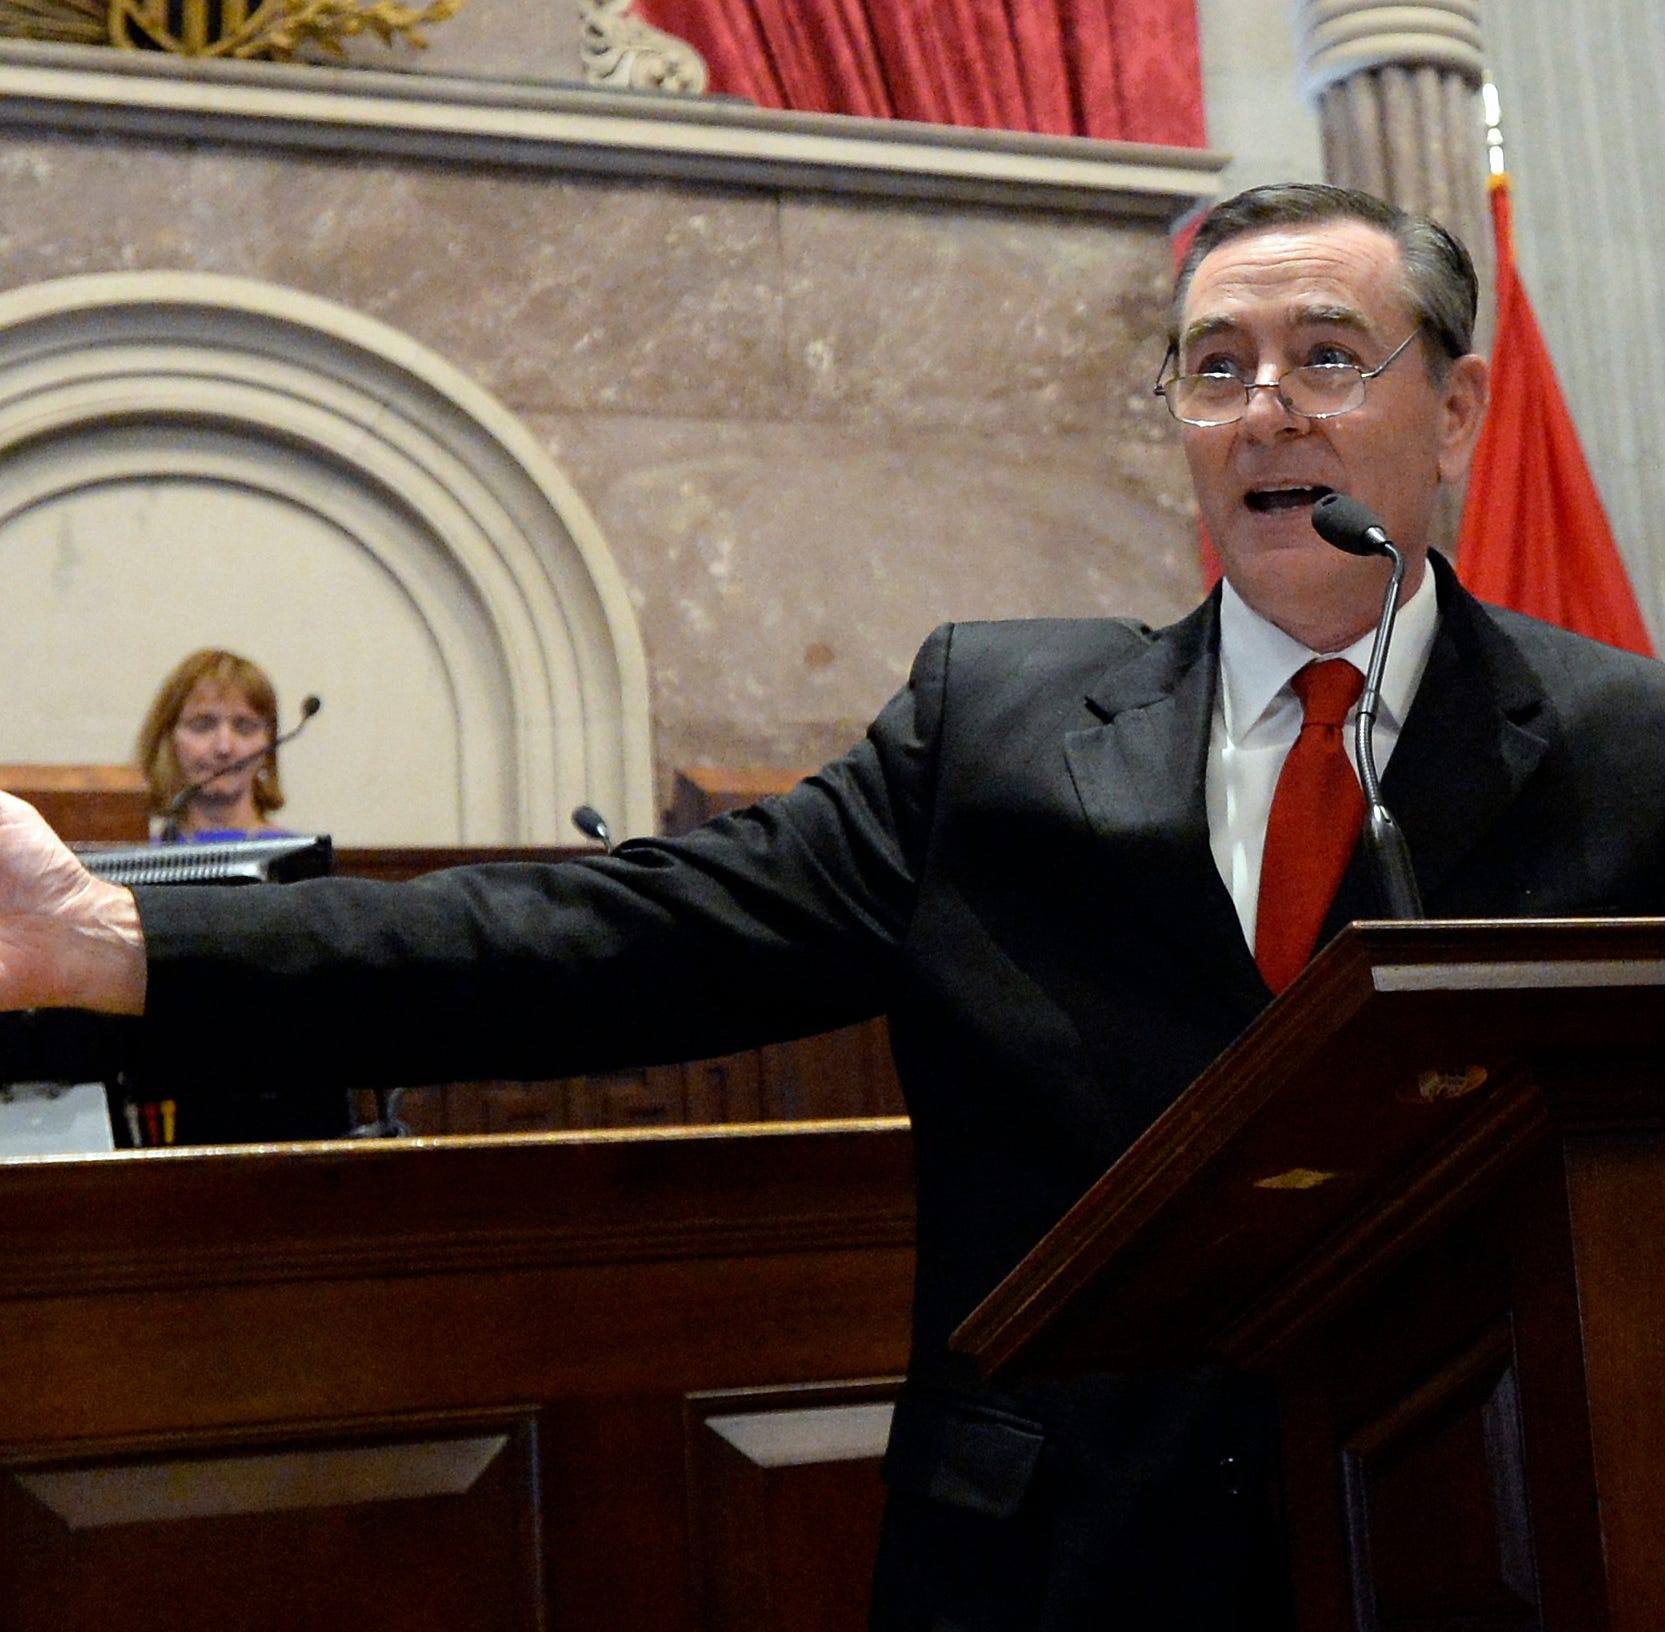 Glen Casada is a great leader and should stay as Tennessee Speaker of the House | Opinion